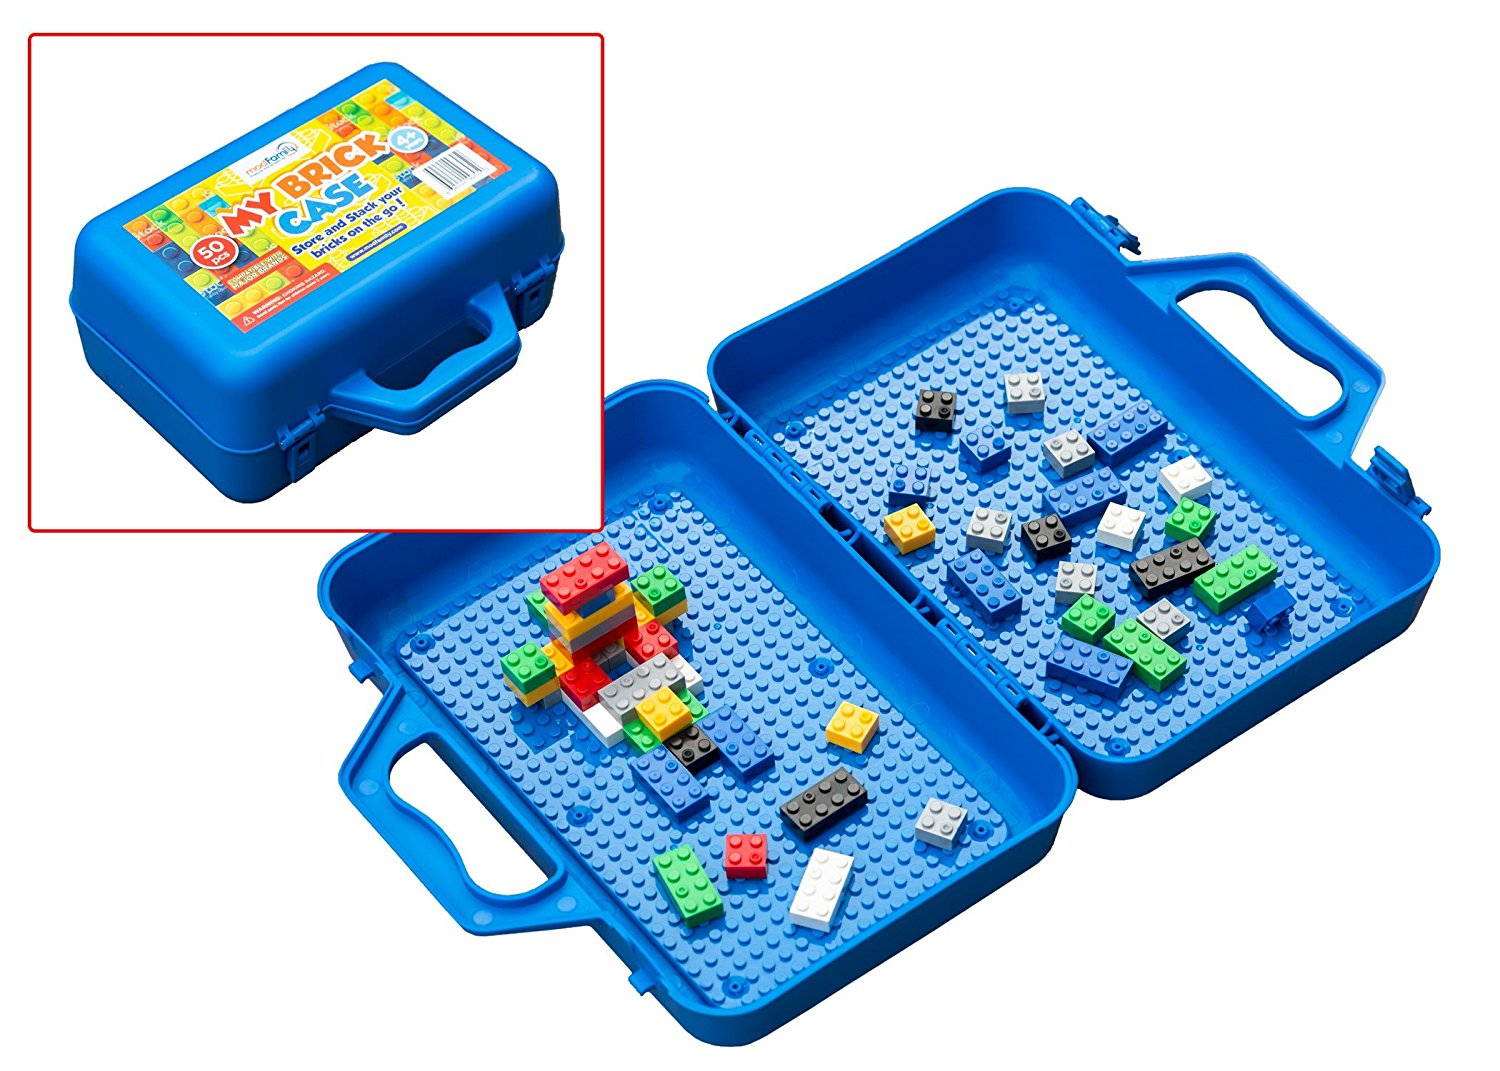 My Brick Case: Portable Storage For Kids Building Bricks With Play Surface {SALE ALERT}